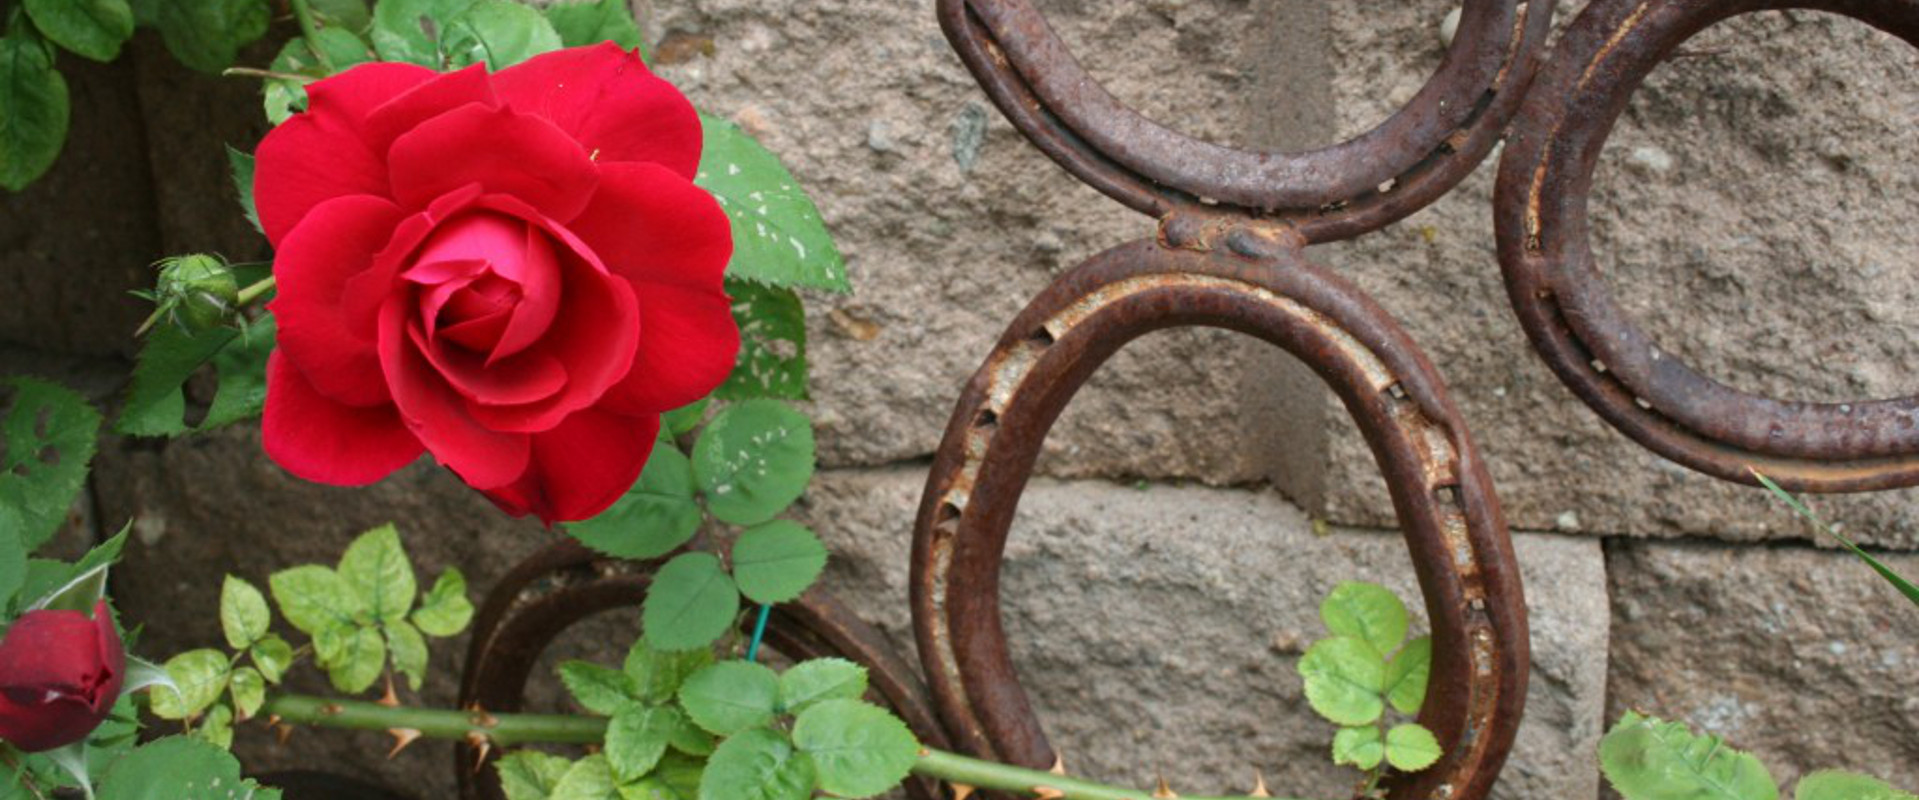 Rose And Horseshoes